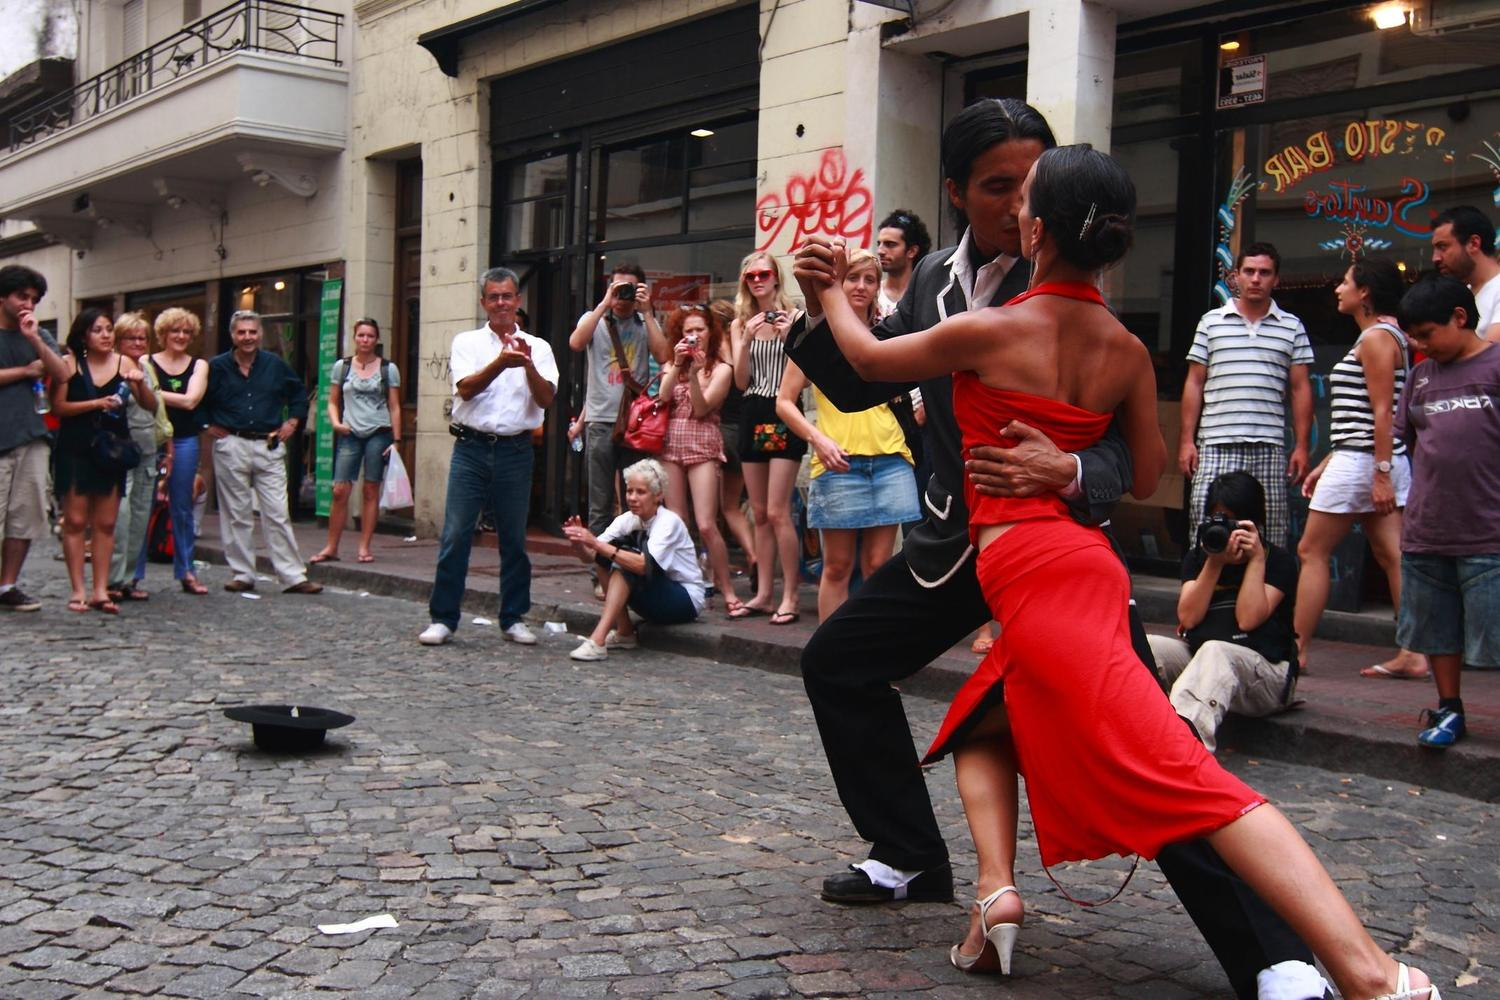 Tango performers on the streets of San Telmo, Buenos Aires